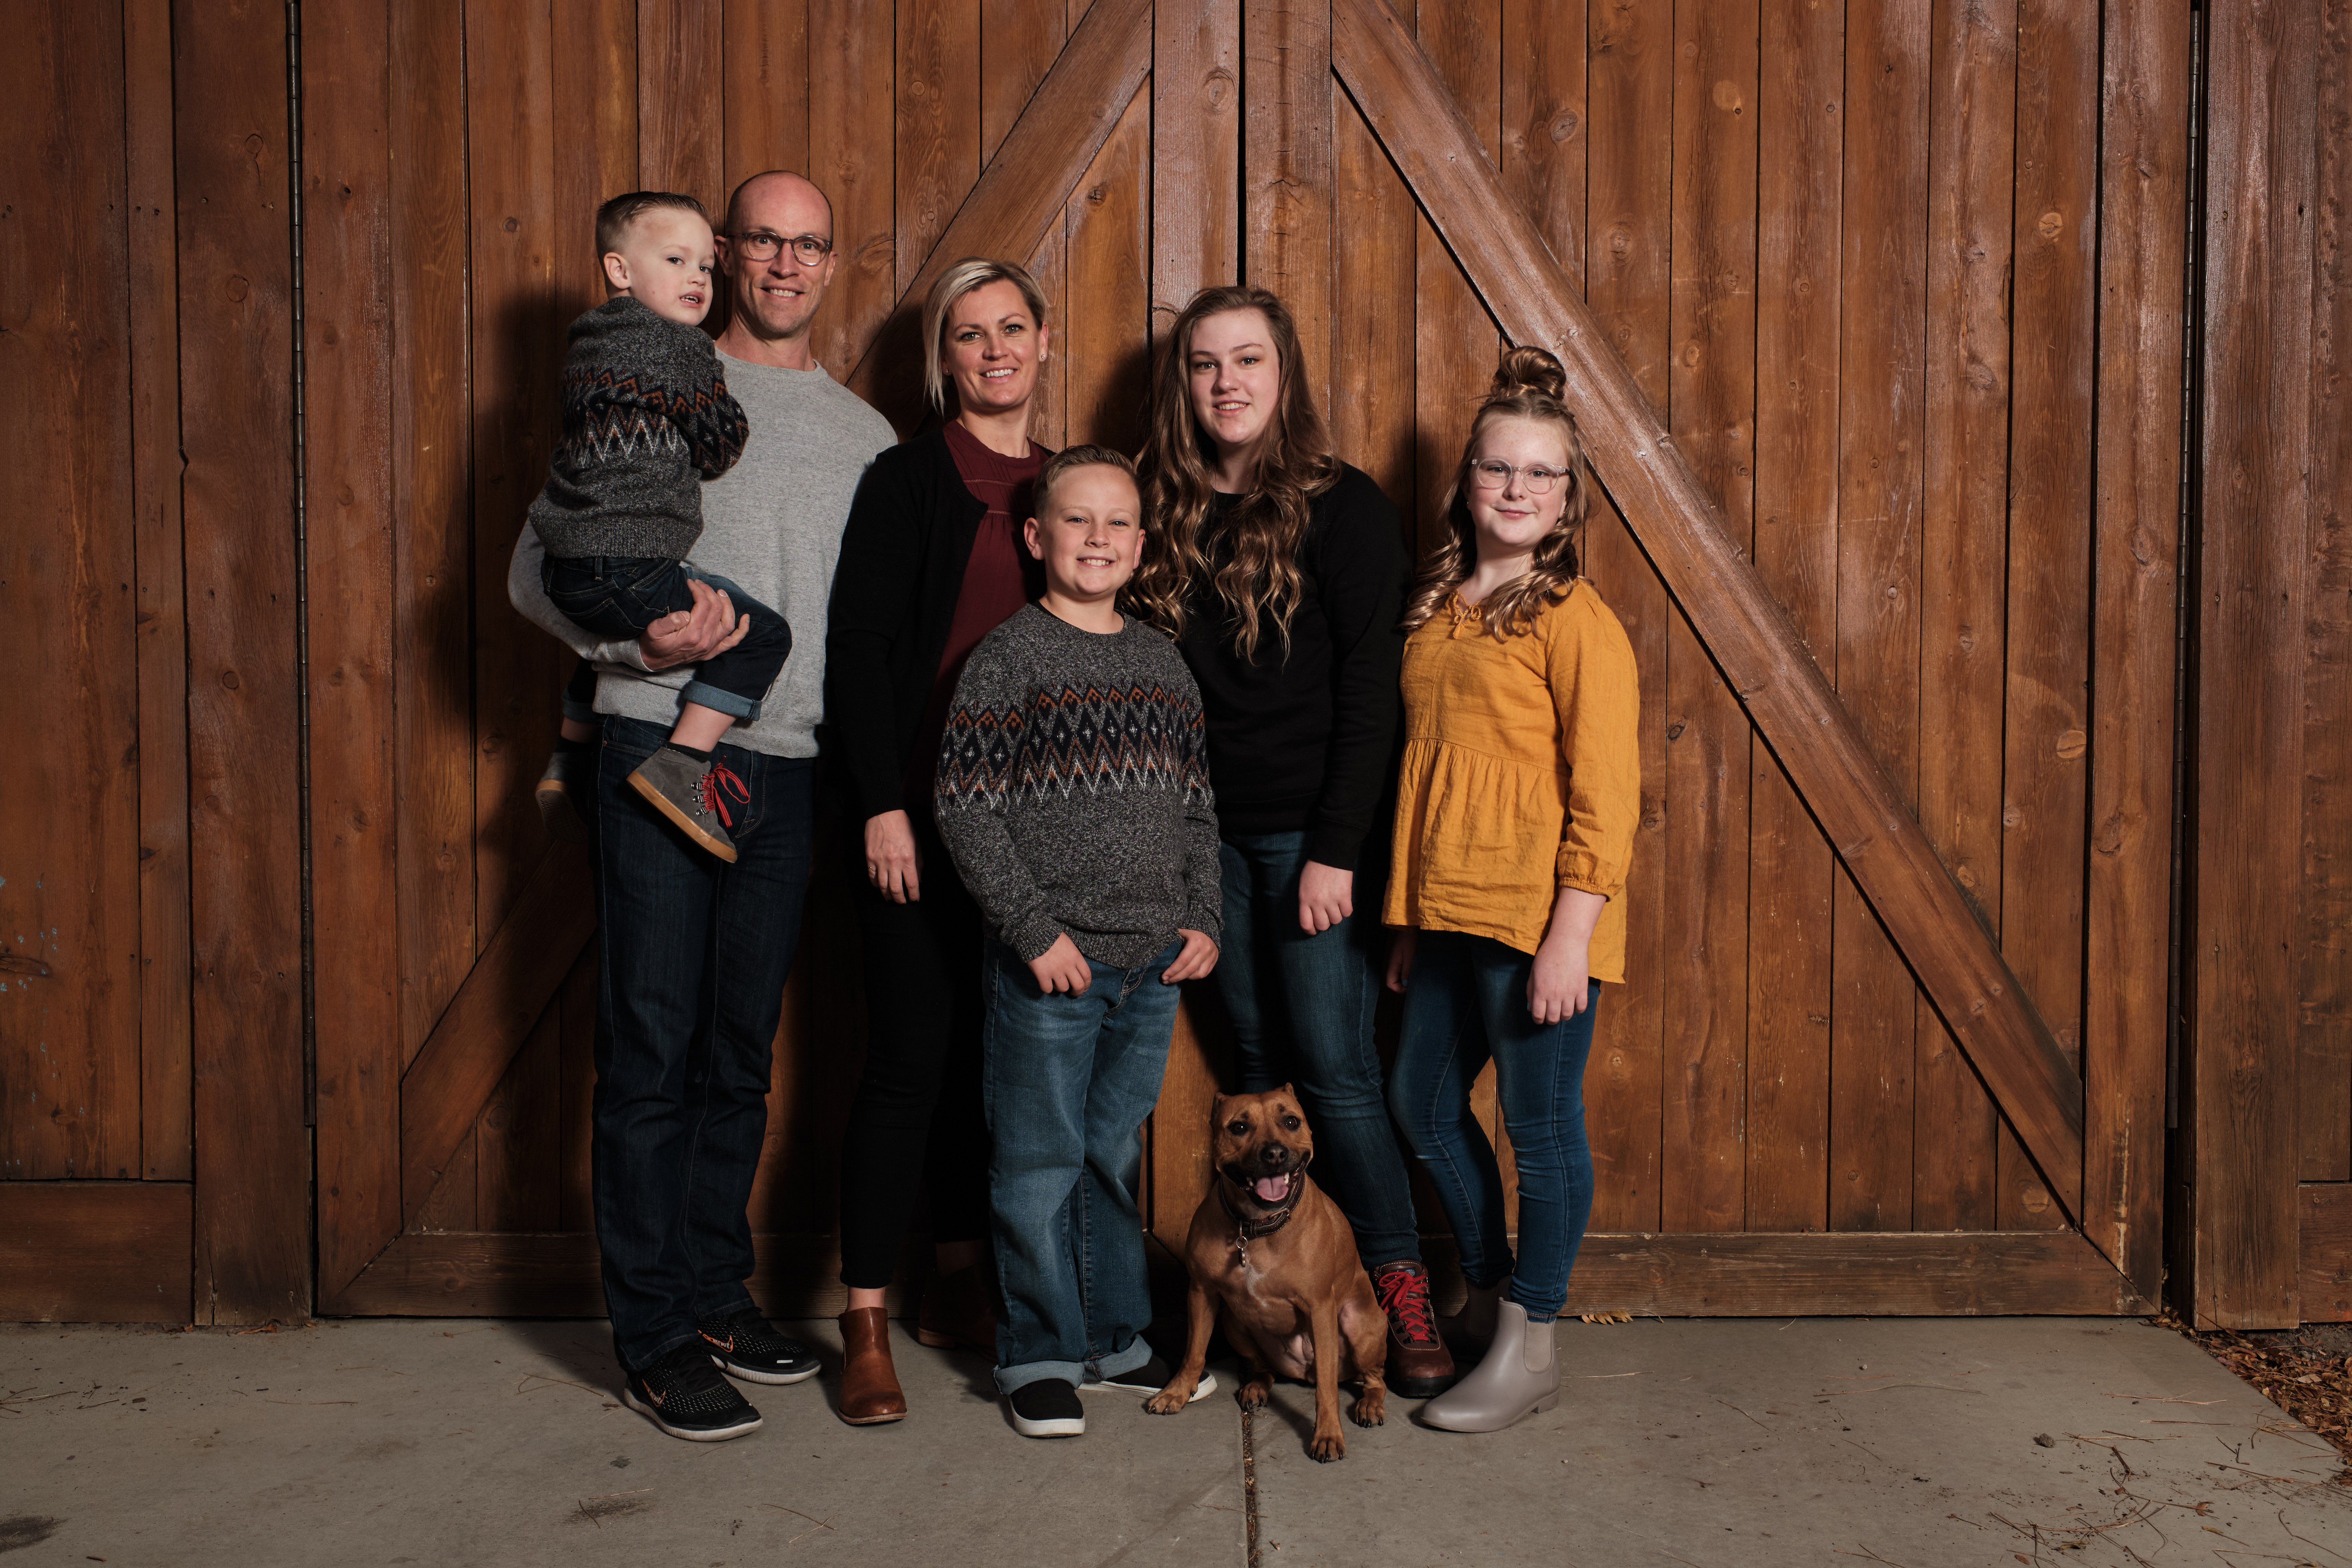 A family picture in front of a barn wall.